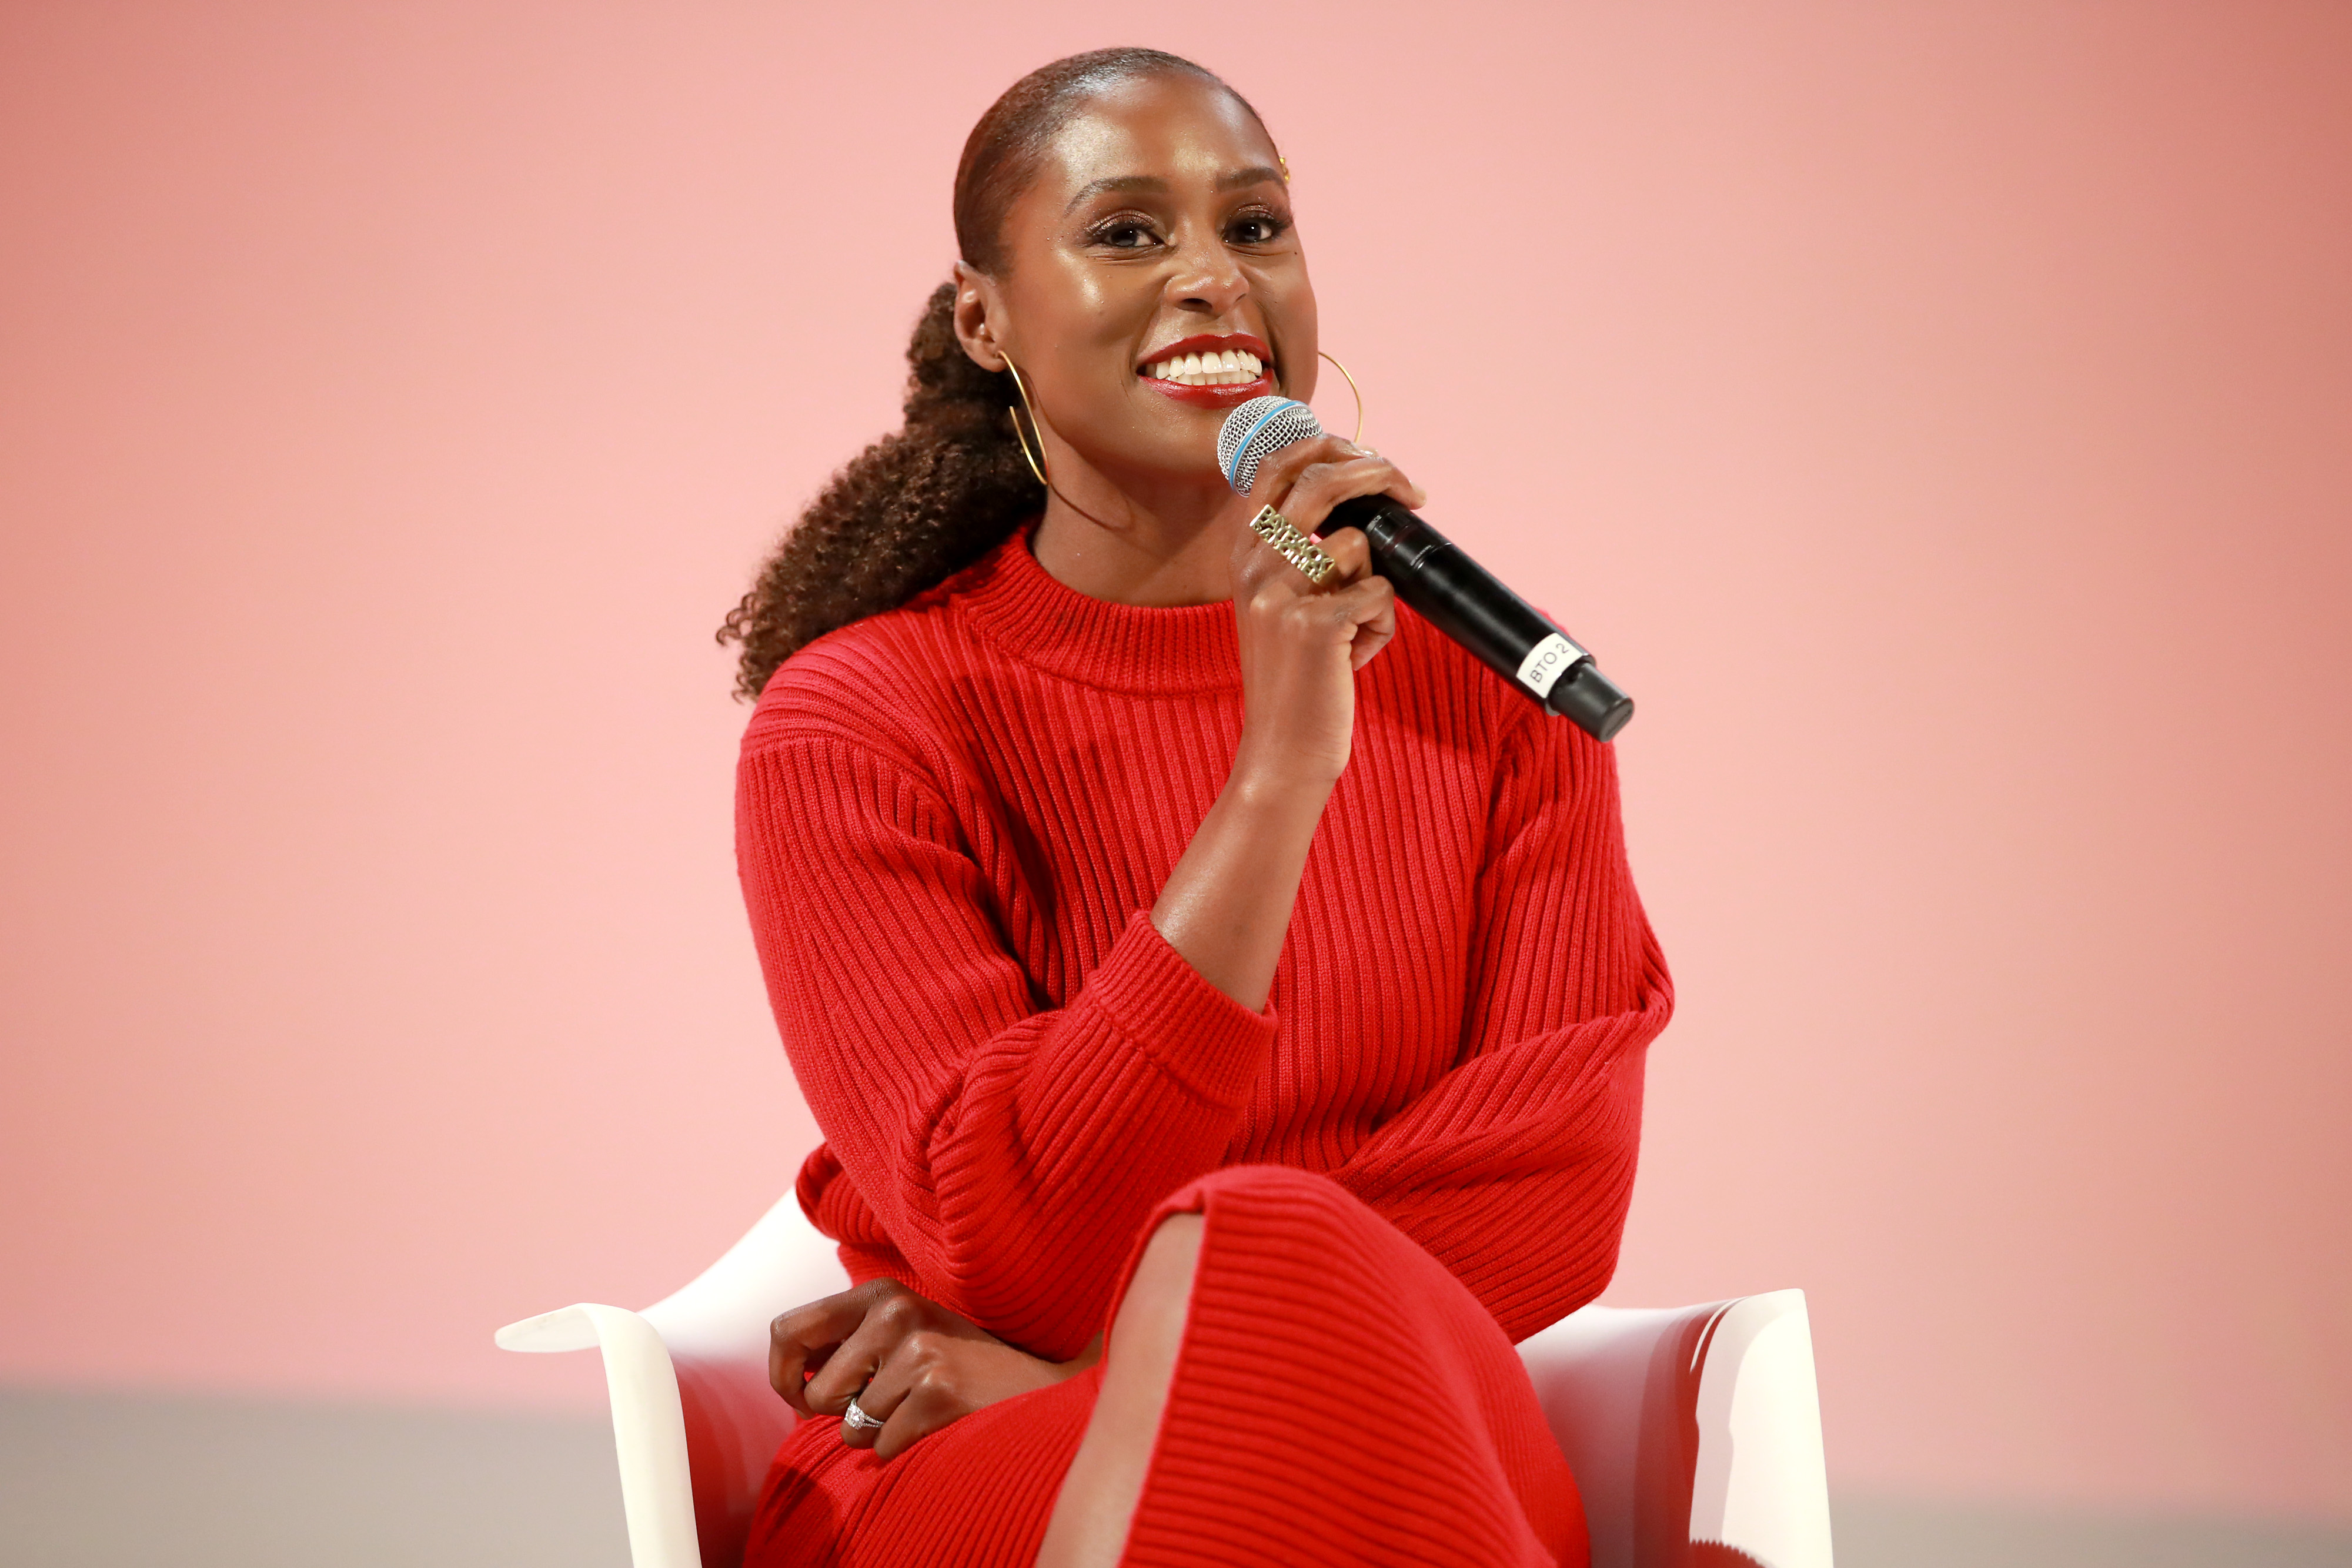 Inglewood Coffee Shop Hilltop Opens With Help From Issa Rae